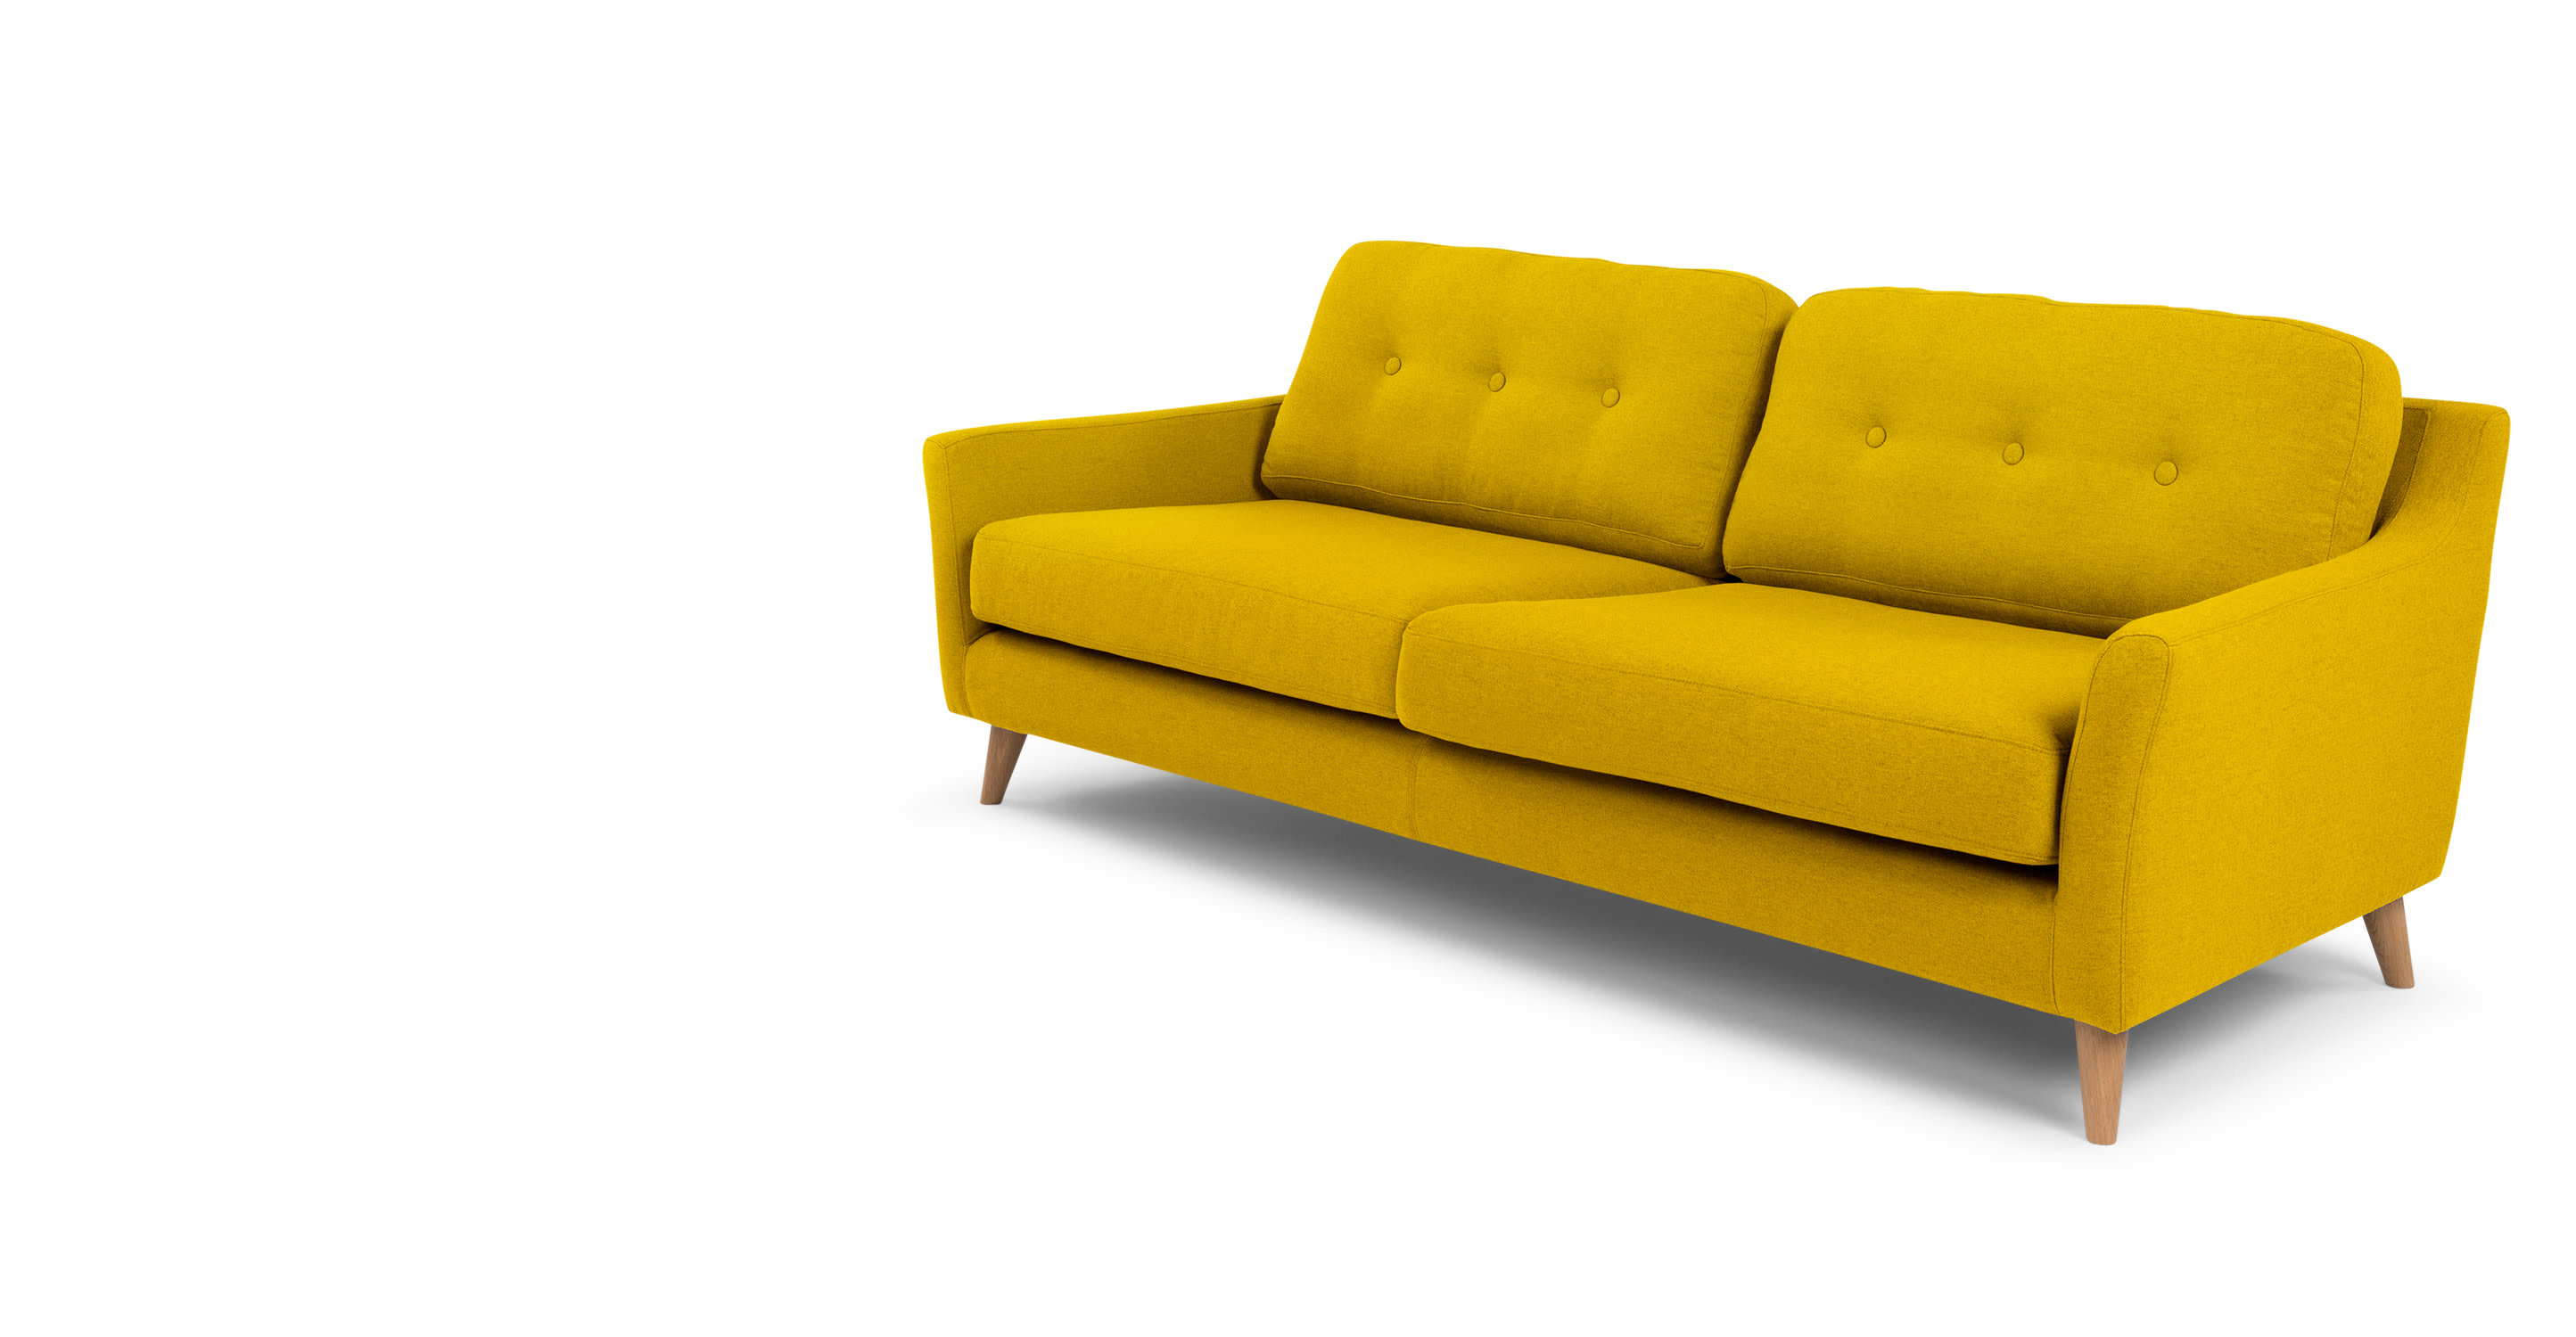 Rufus 3 Seater Sofa, Mustard Yellow made com